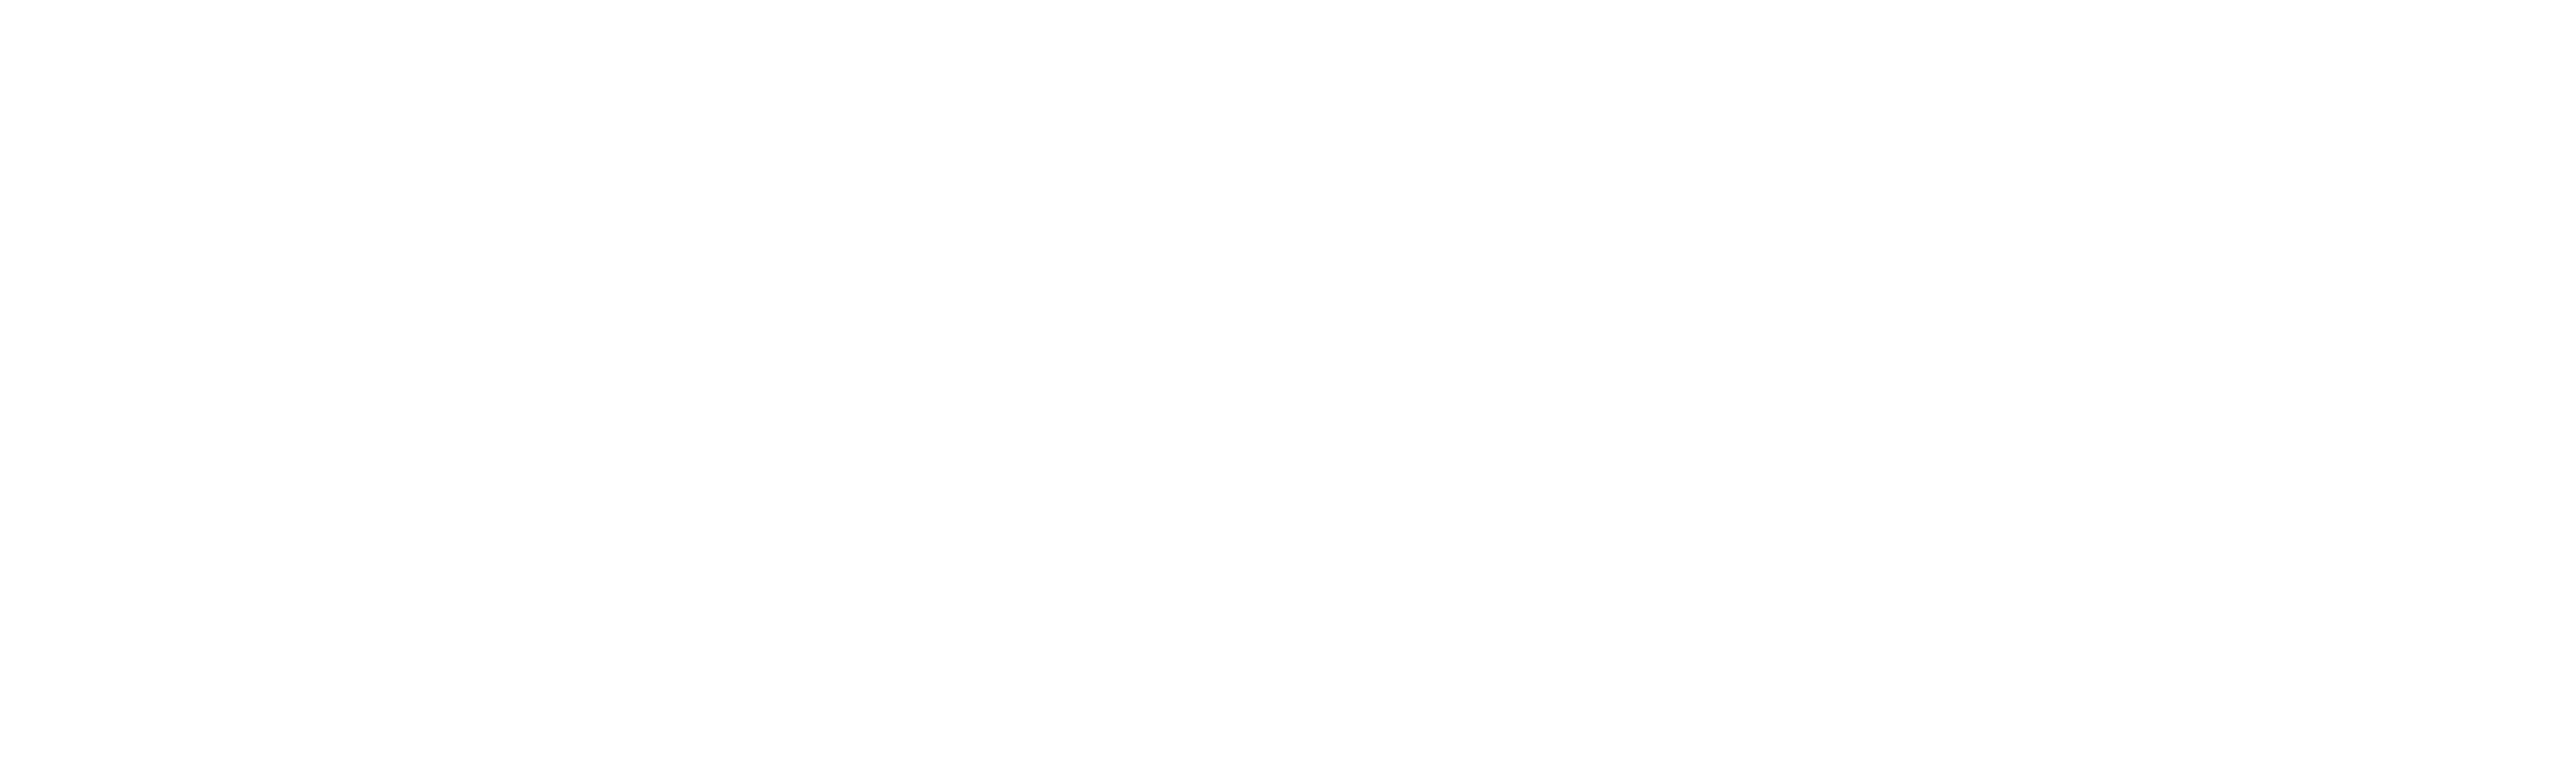 The Crop Candle Co.